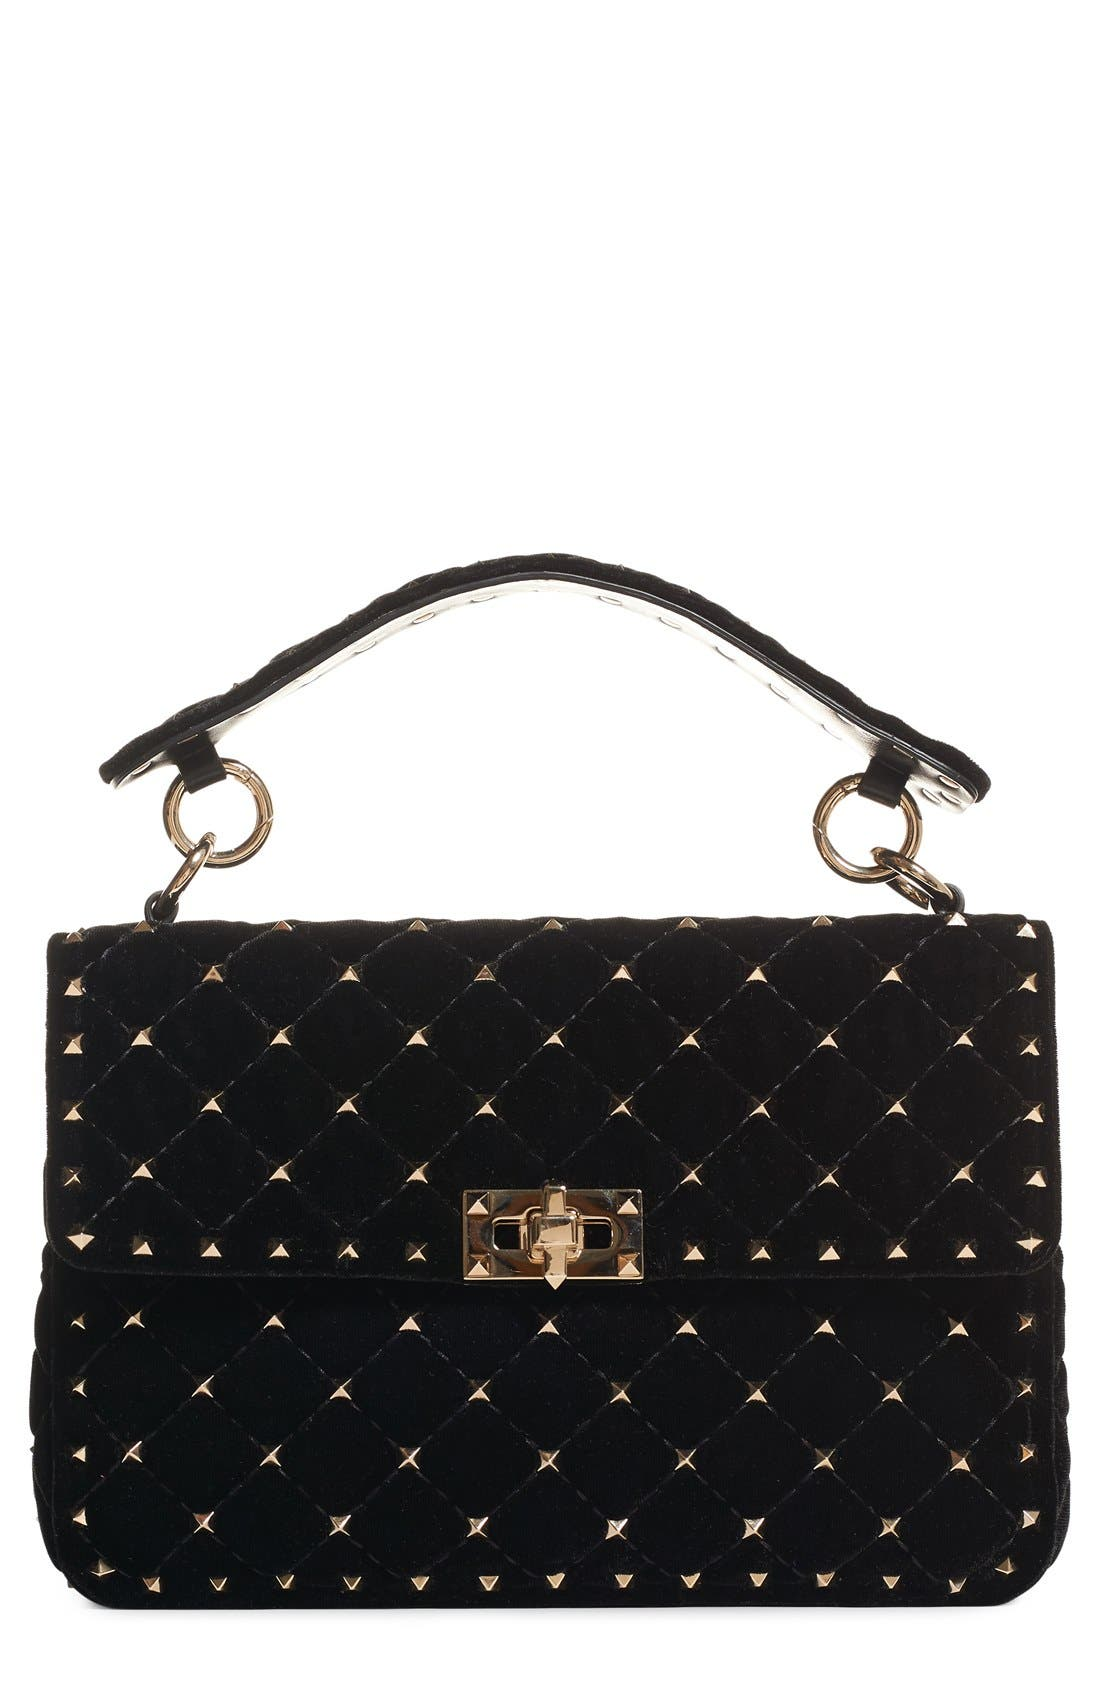 Rockstud Quilted Leather Shoulder Bag,                             Main thumbnail 1, color,                             NERO